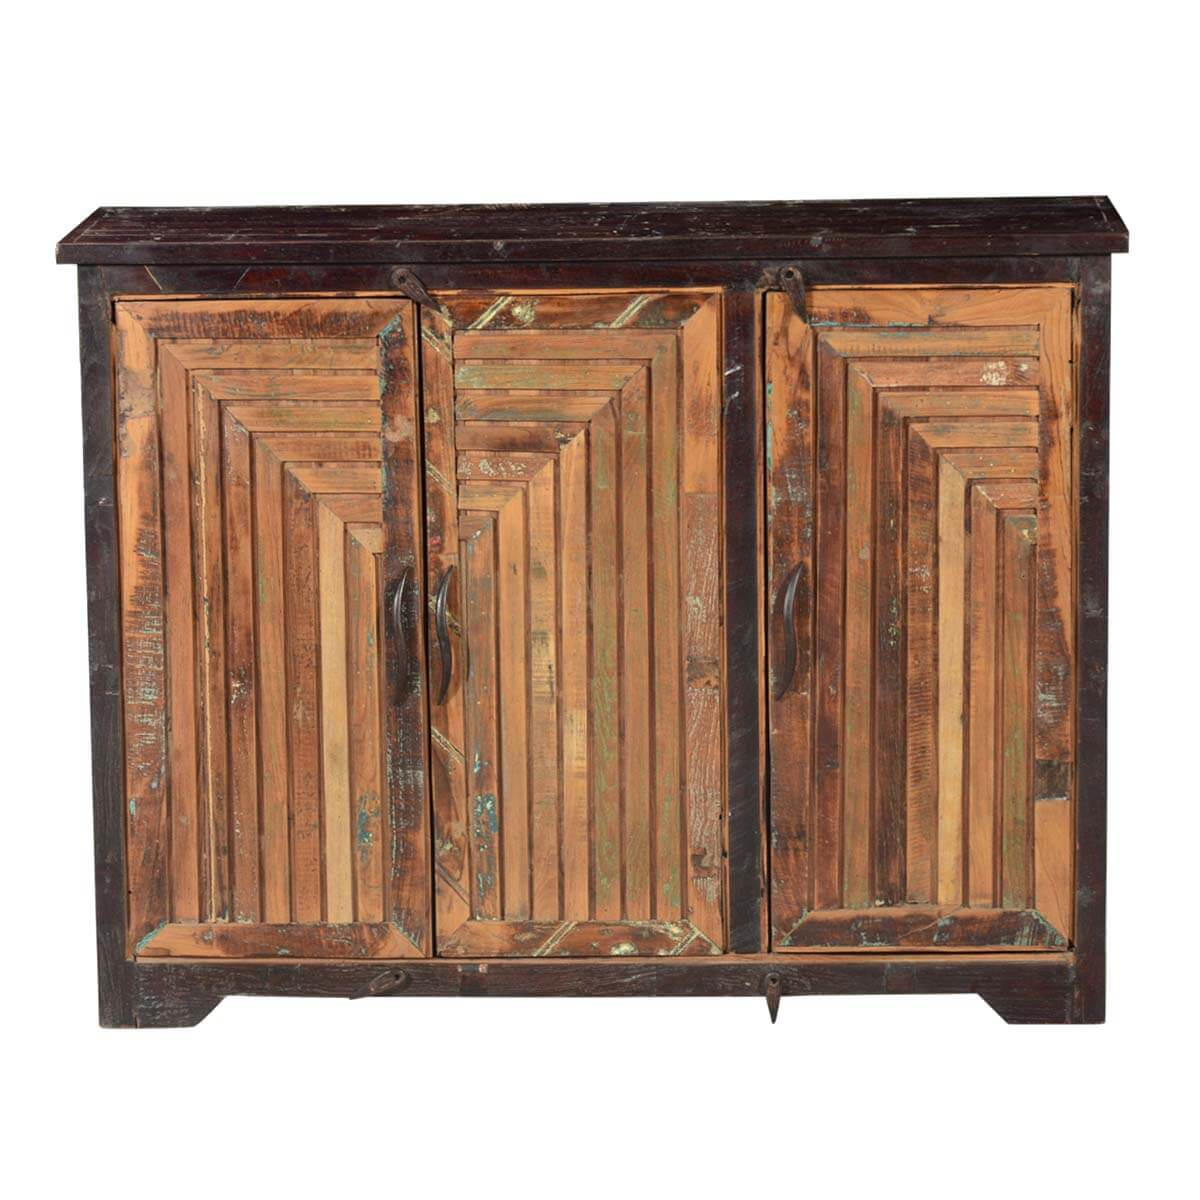 Sunburst reclaimed wood door rustic storage buffet cabinet